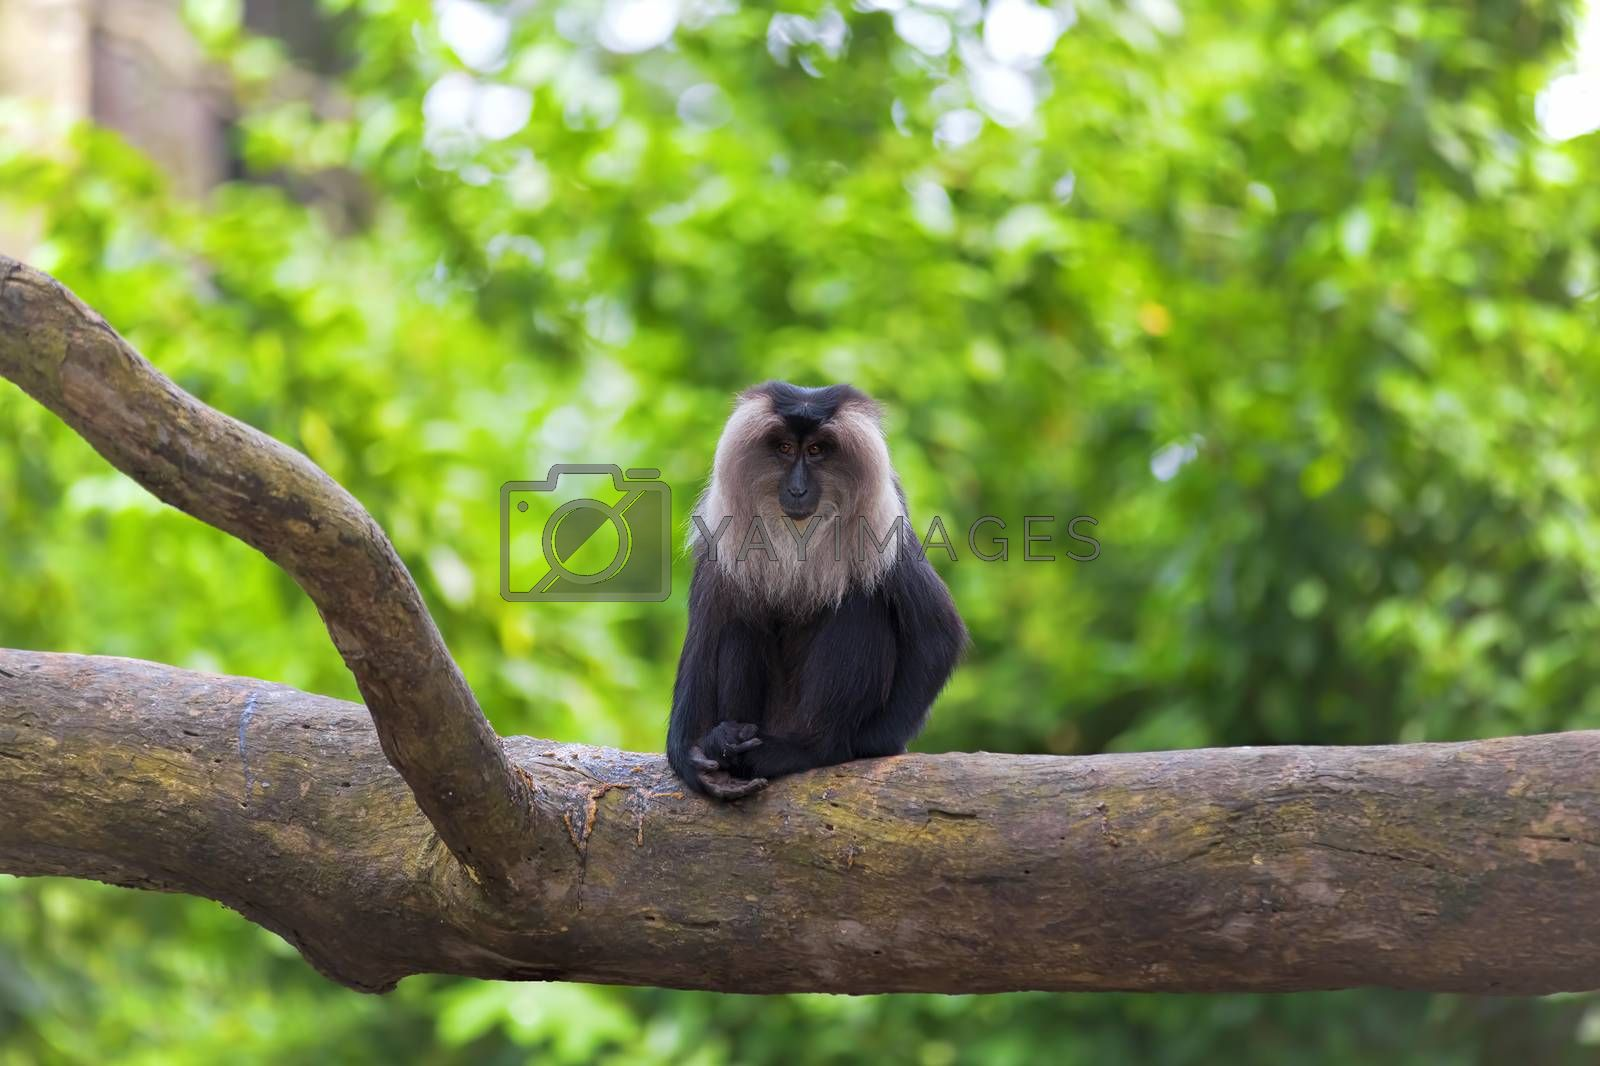 Lion-tailed Macaque sitting on a branch in the jungle